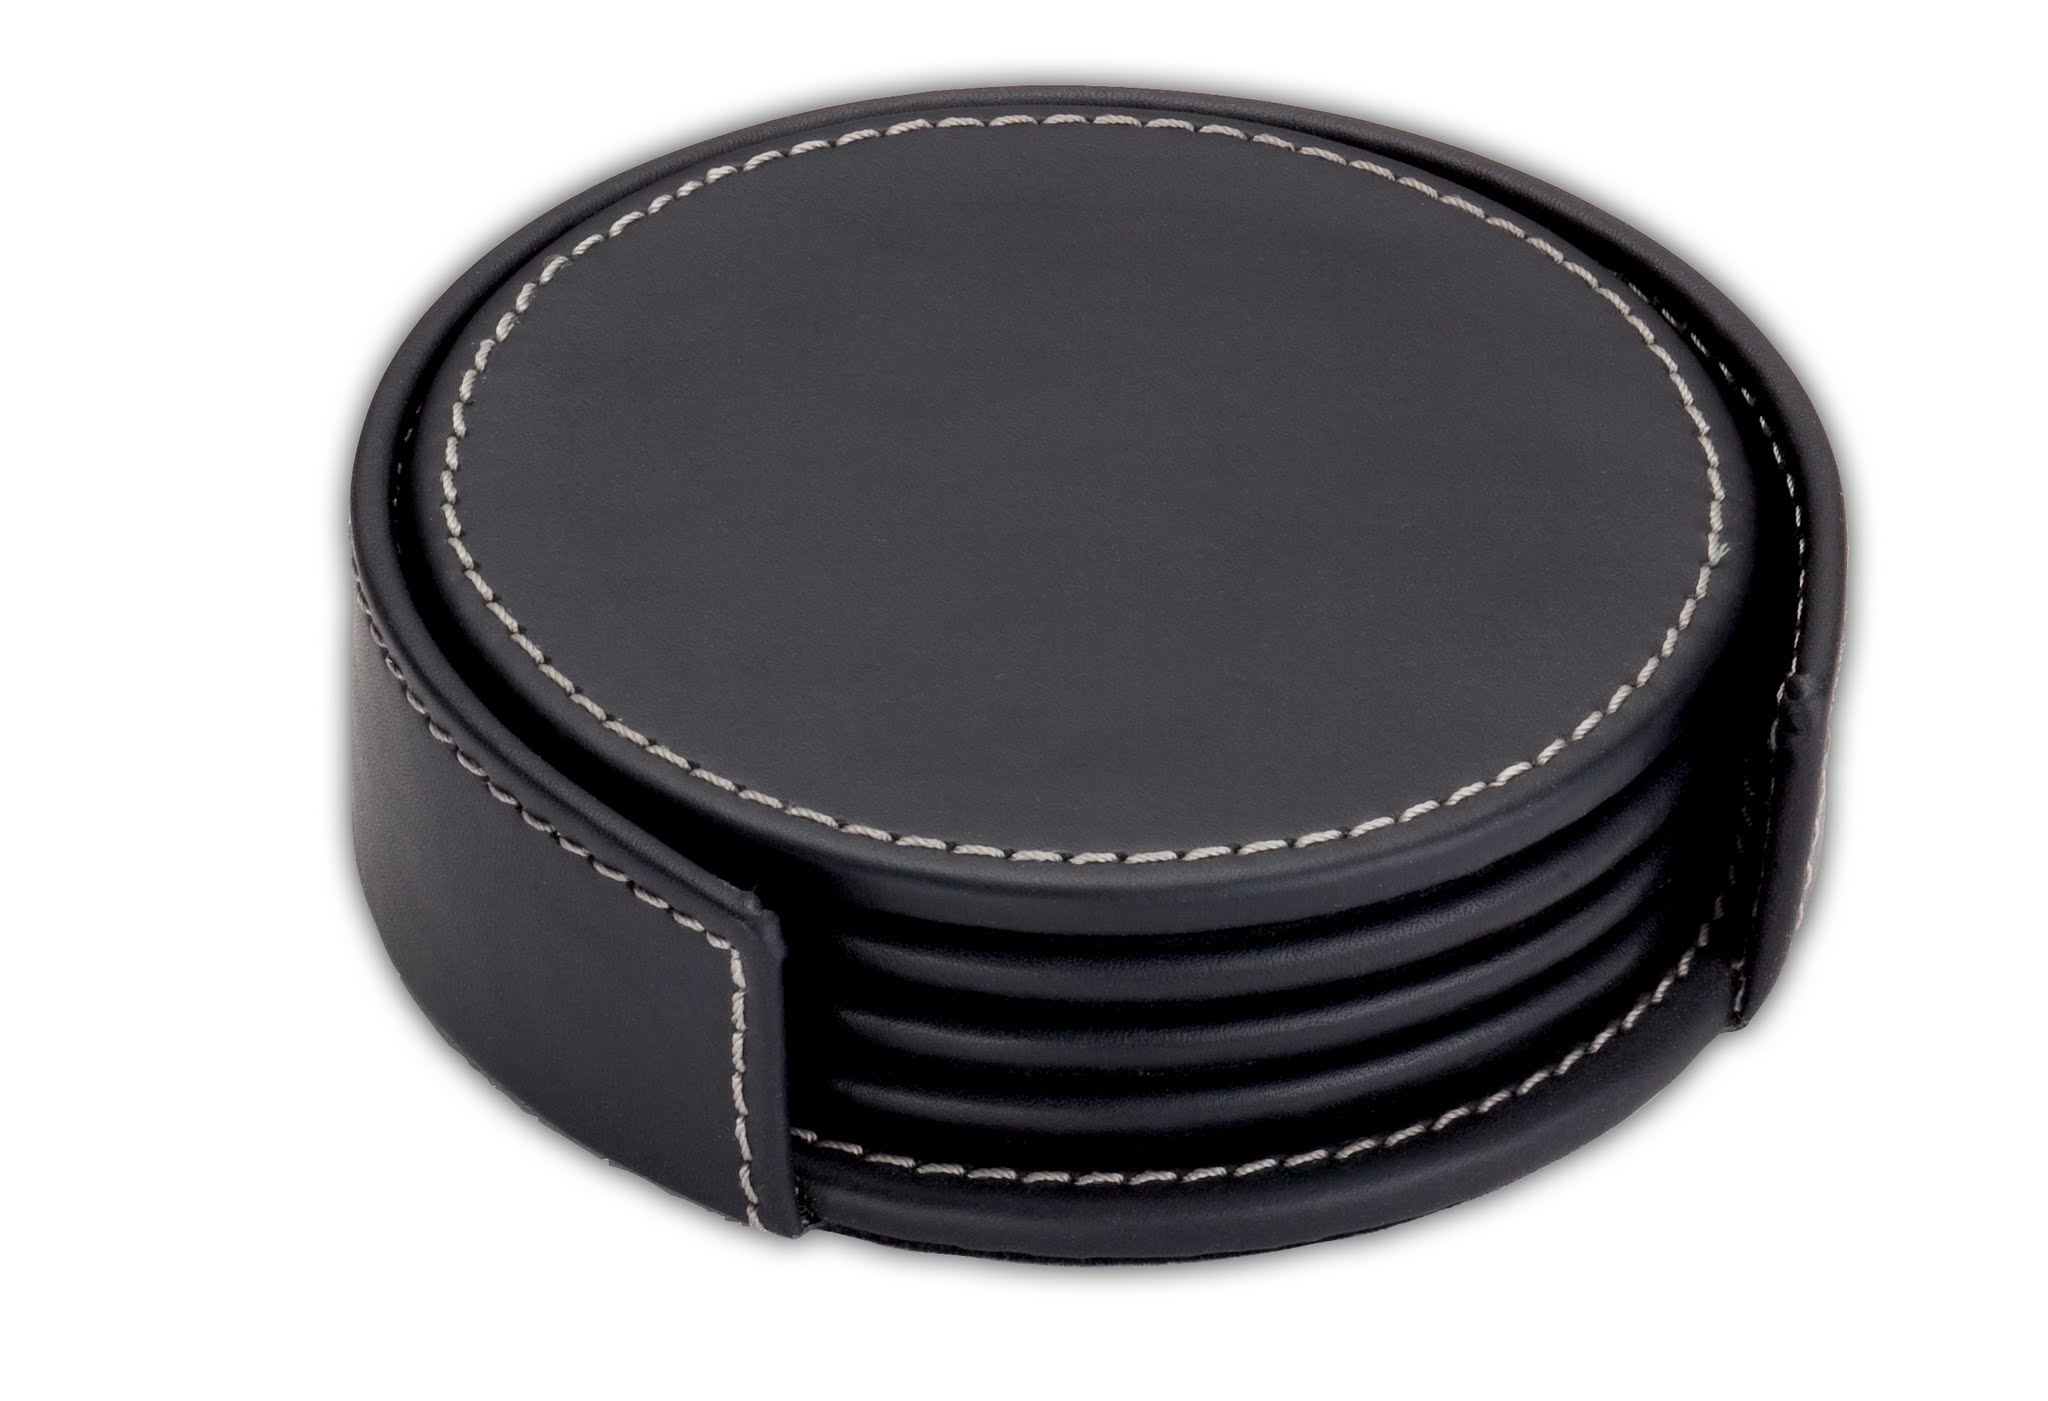 Rustic Black Leather Coaster Set with Holder by Dacasso